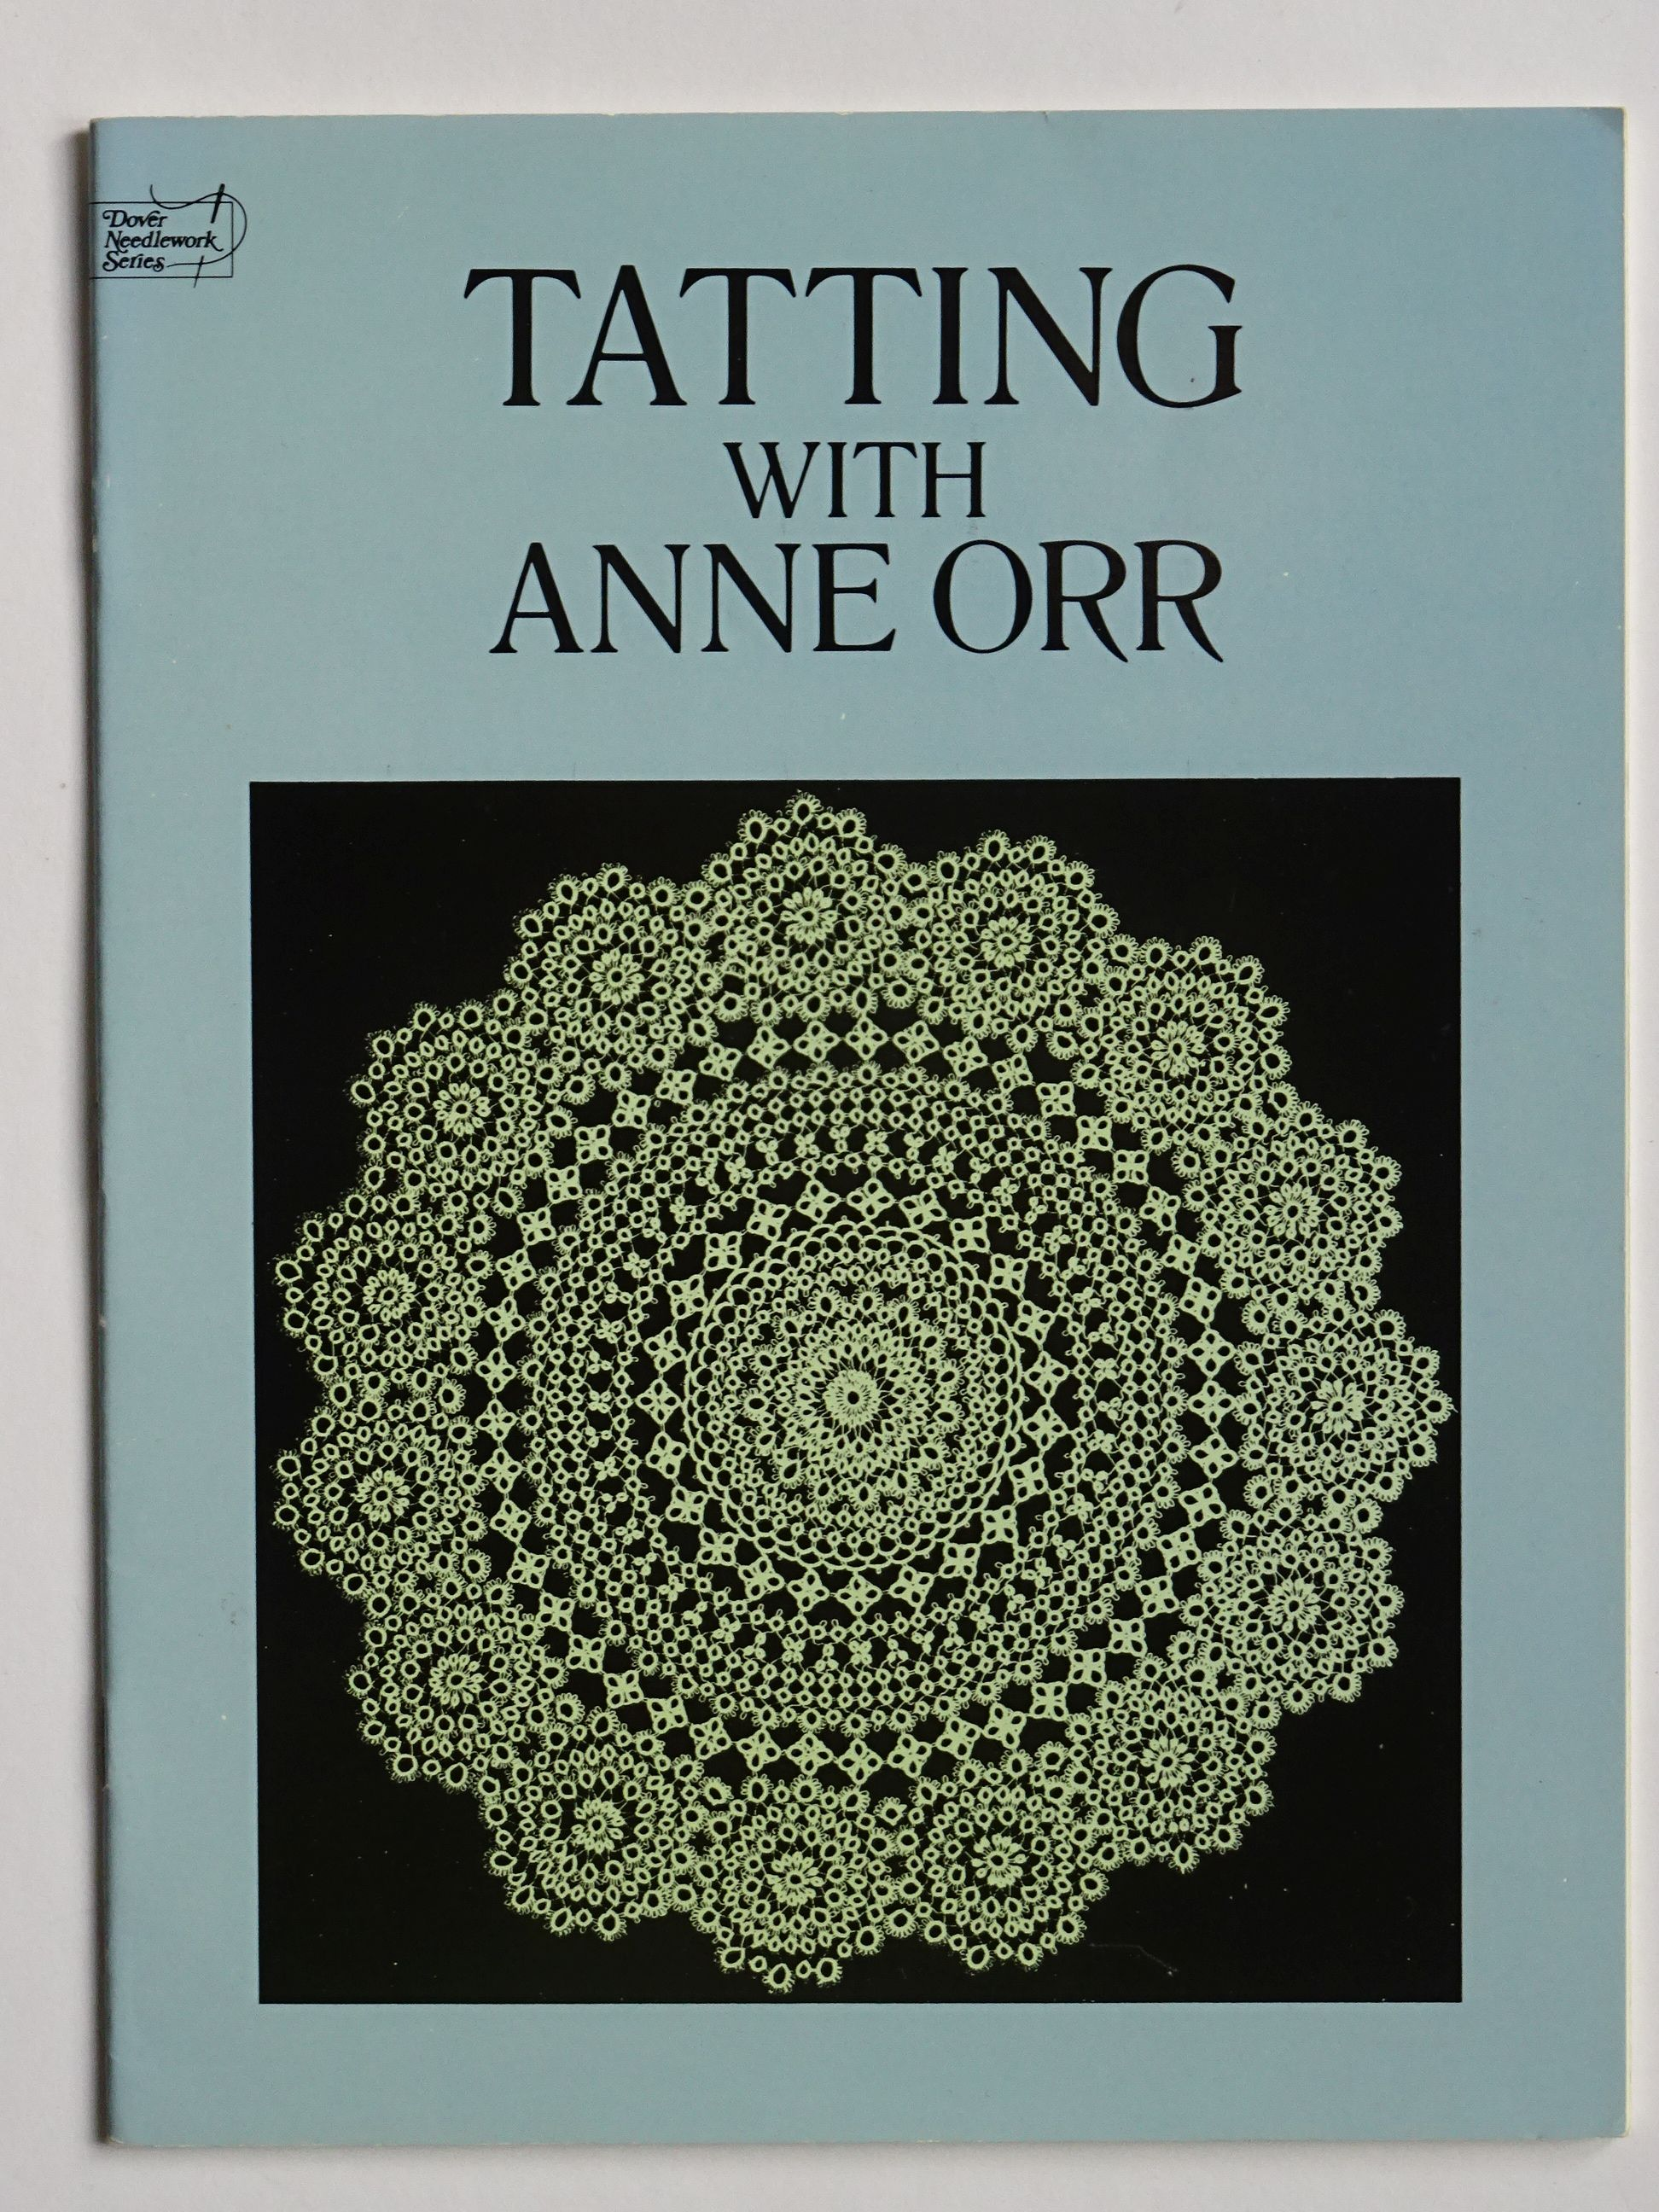 Orr, Ann - Tatting with Anne Orr.